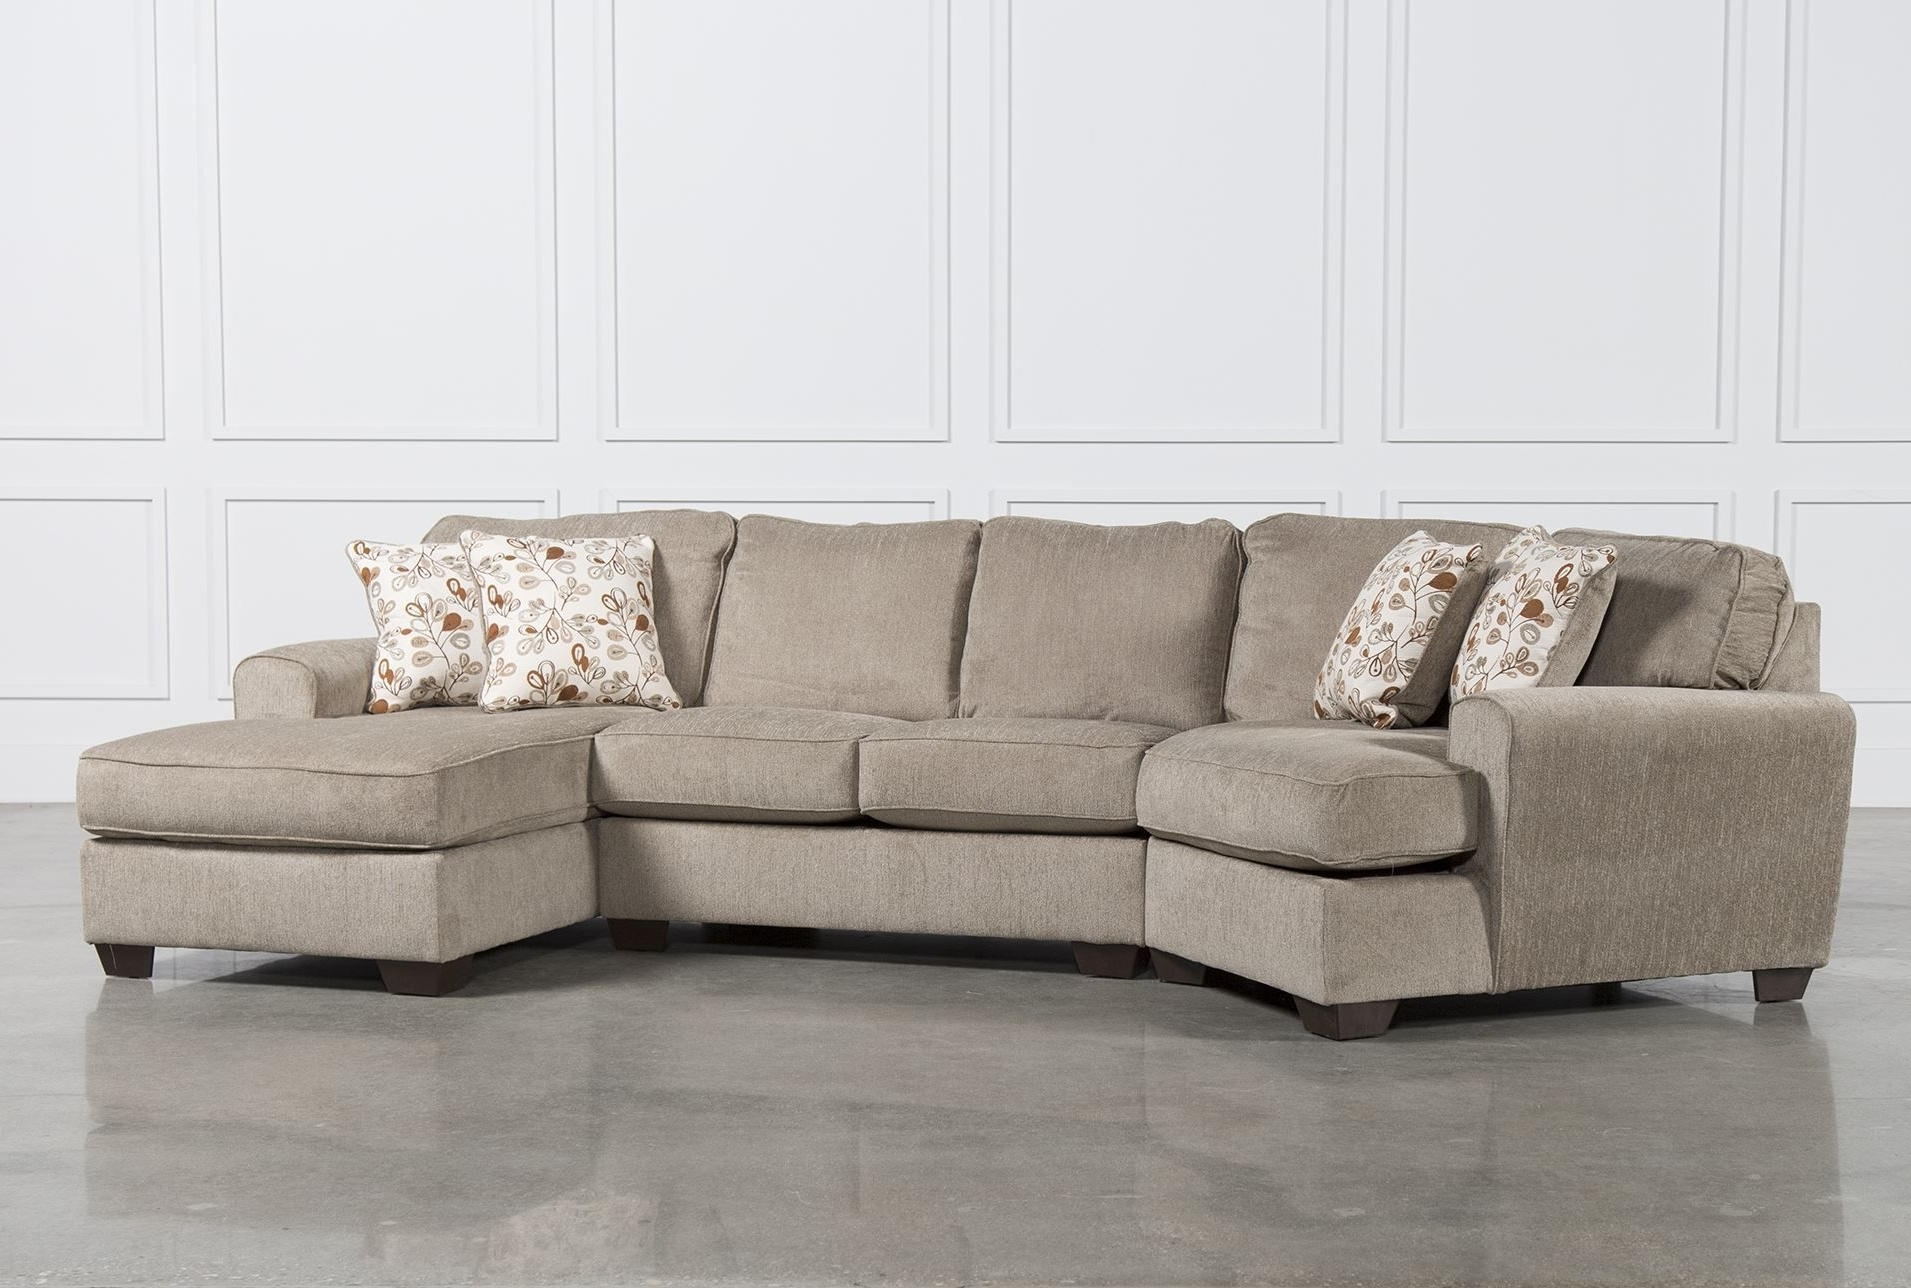 Patola Park 3 Piece Cuddler Sectional W/raf Corner Chaise (View 6 of 15)